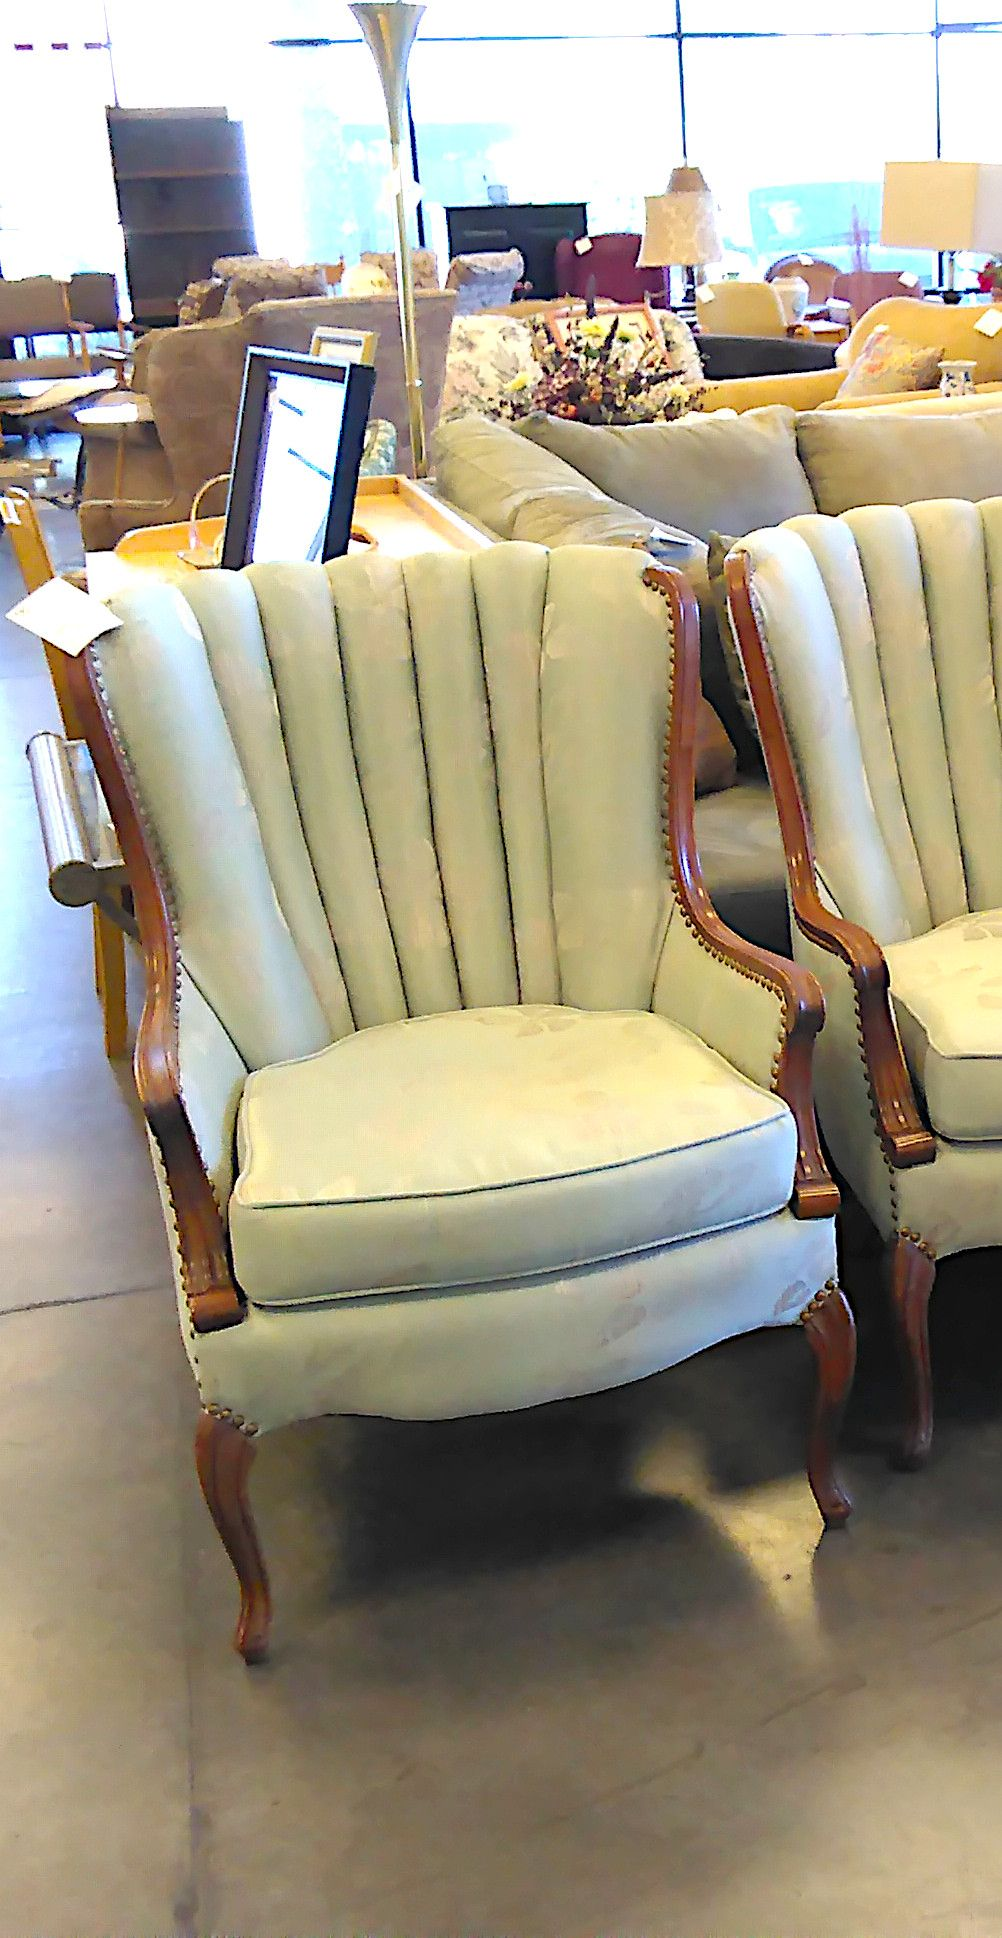 Victorian shell back chairs found at our Greenfield Rd and Main St location in Mesa, AZ. #VintageFurniture #AntiqueFurniture #MesaAZ